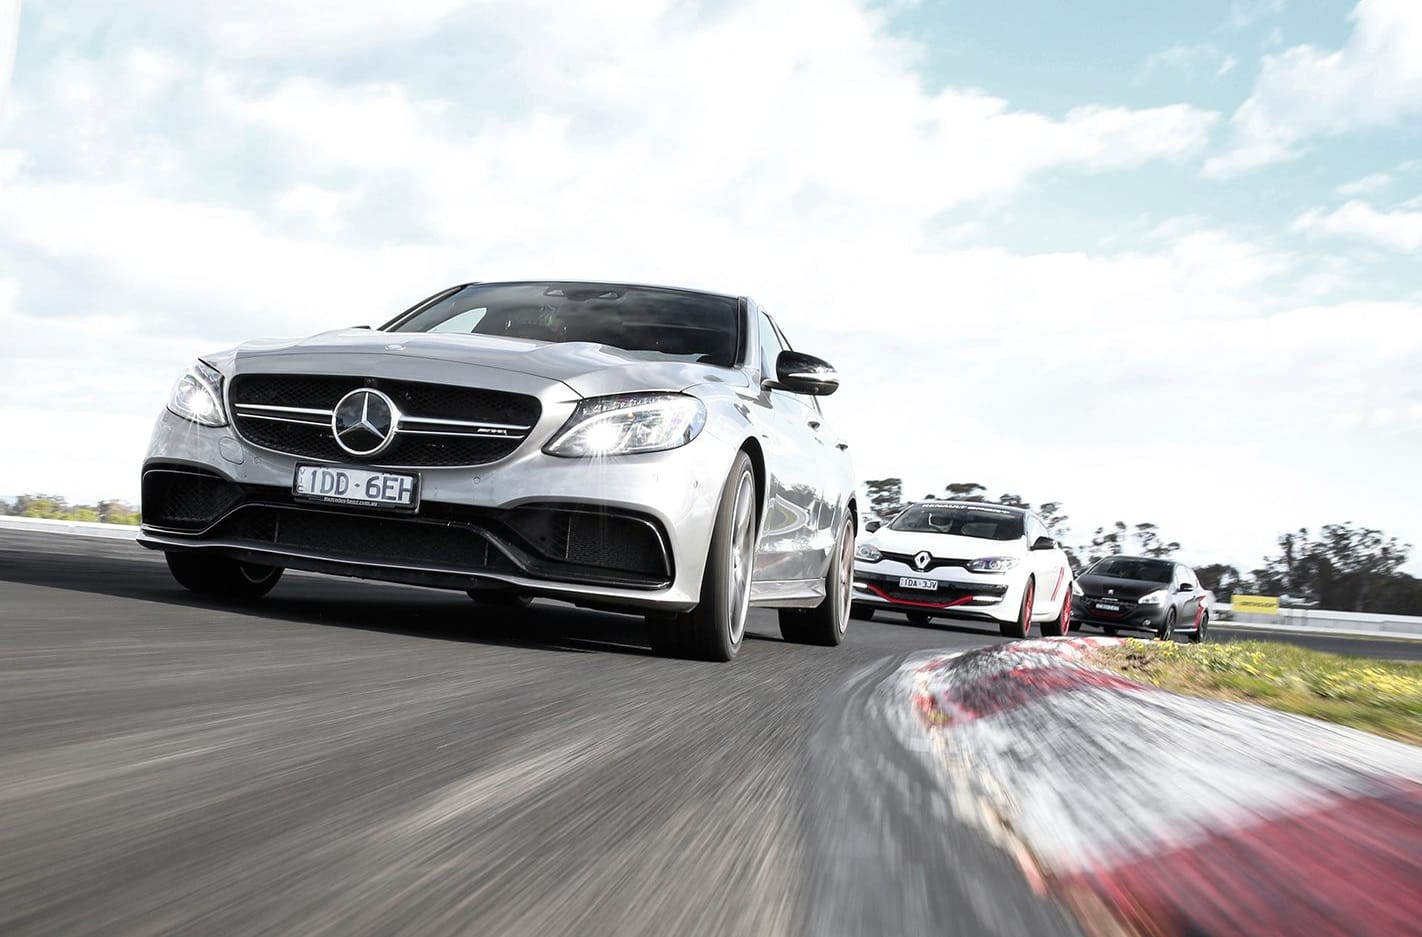 PCOTY 2016: The Track